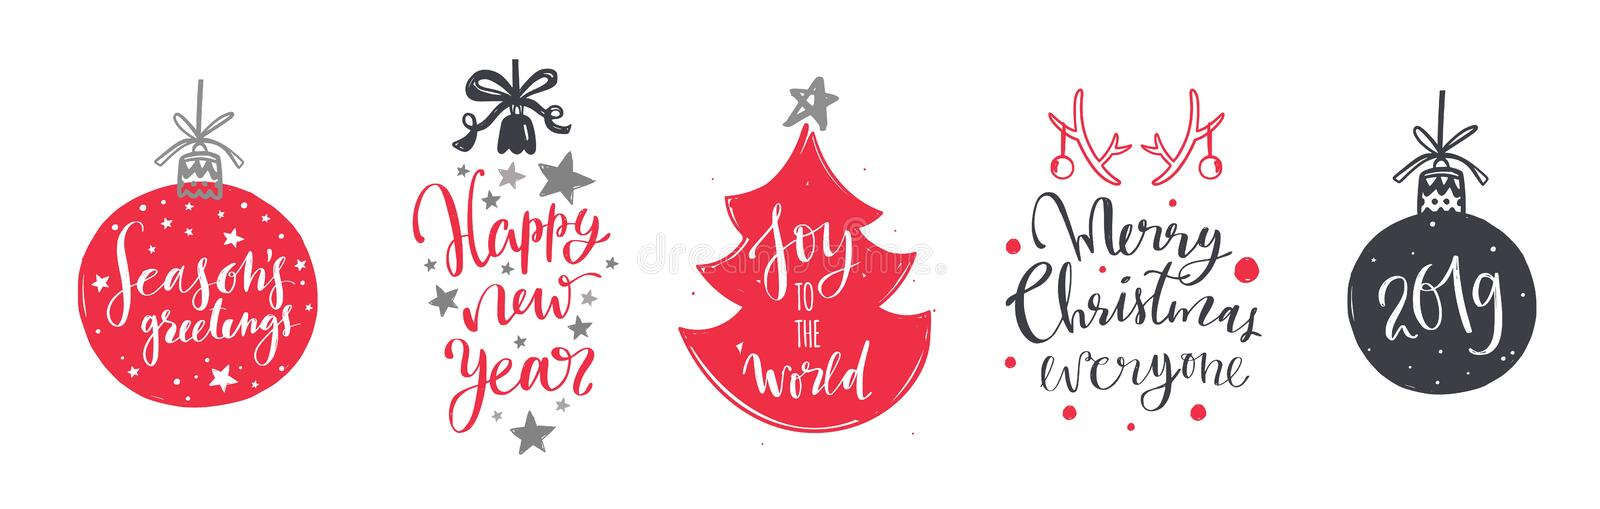 Christmas and New Year Lettering and Calligraphy phrases set 4. Christmas and New Year Lettering and Calligraphy phrases set. Christmas balls and toys concept stock illustration